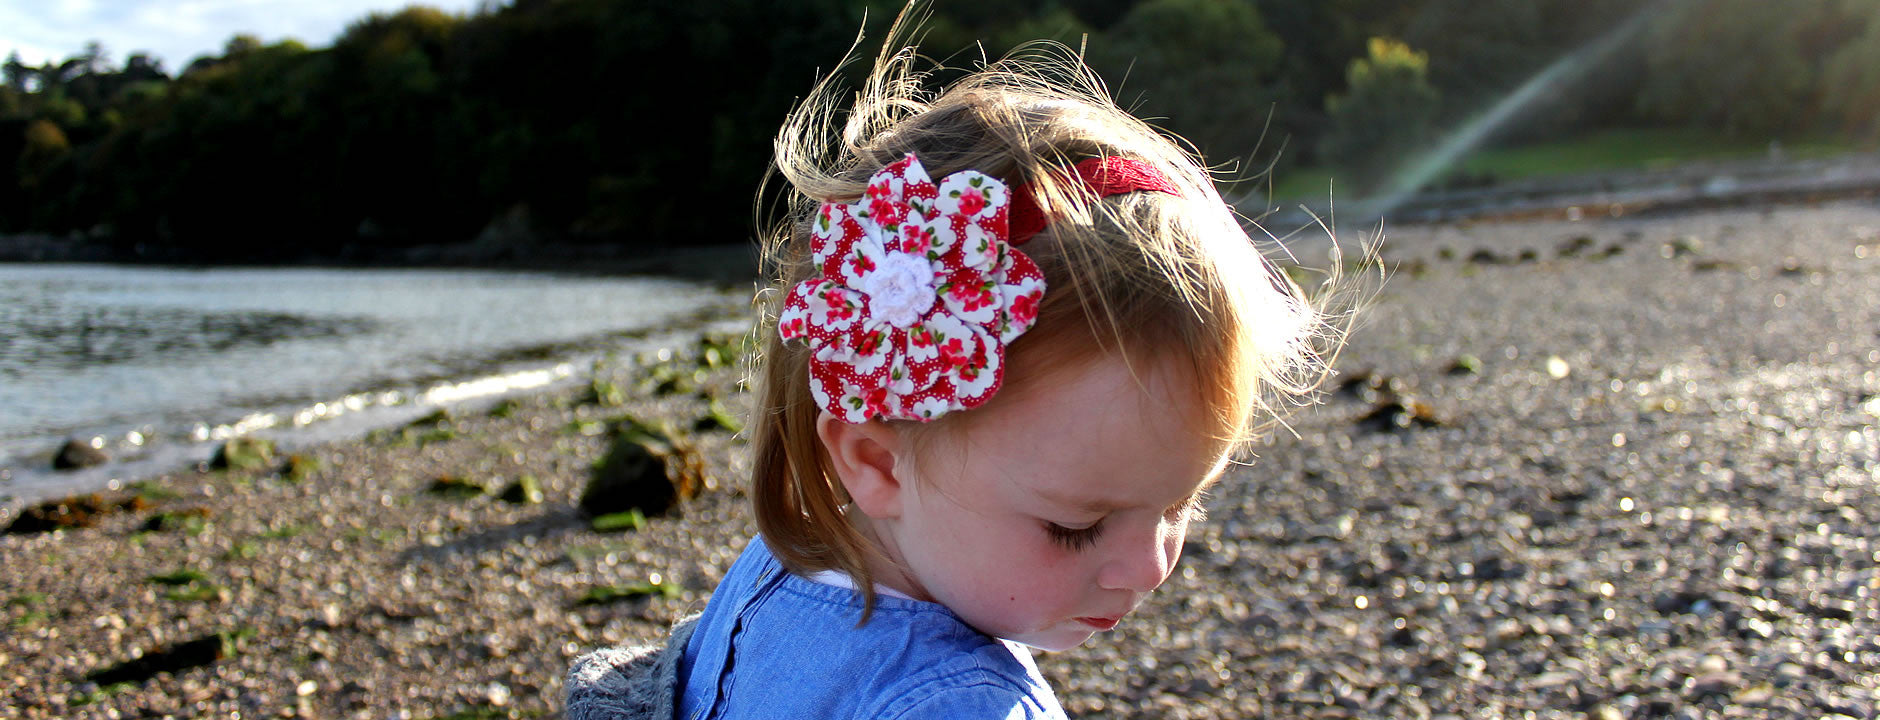 Baby Headbands and Baby Hair Accessories